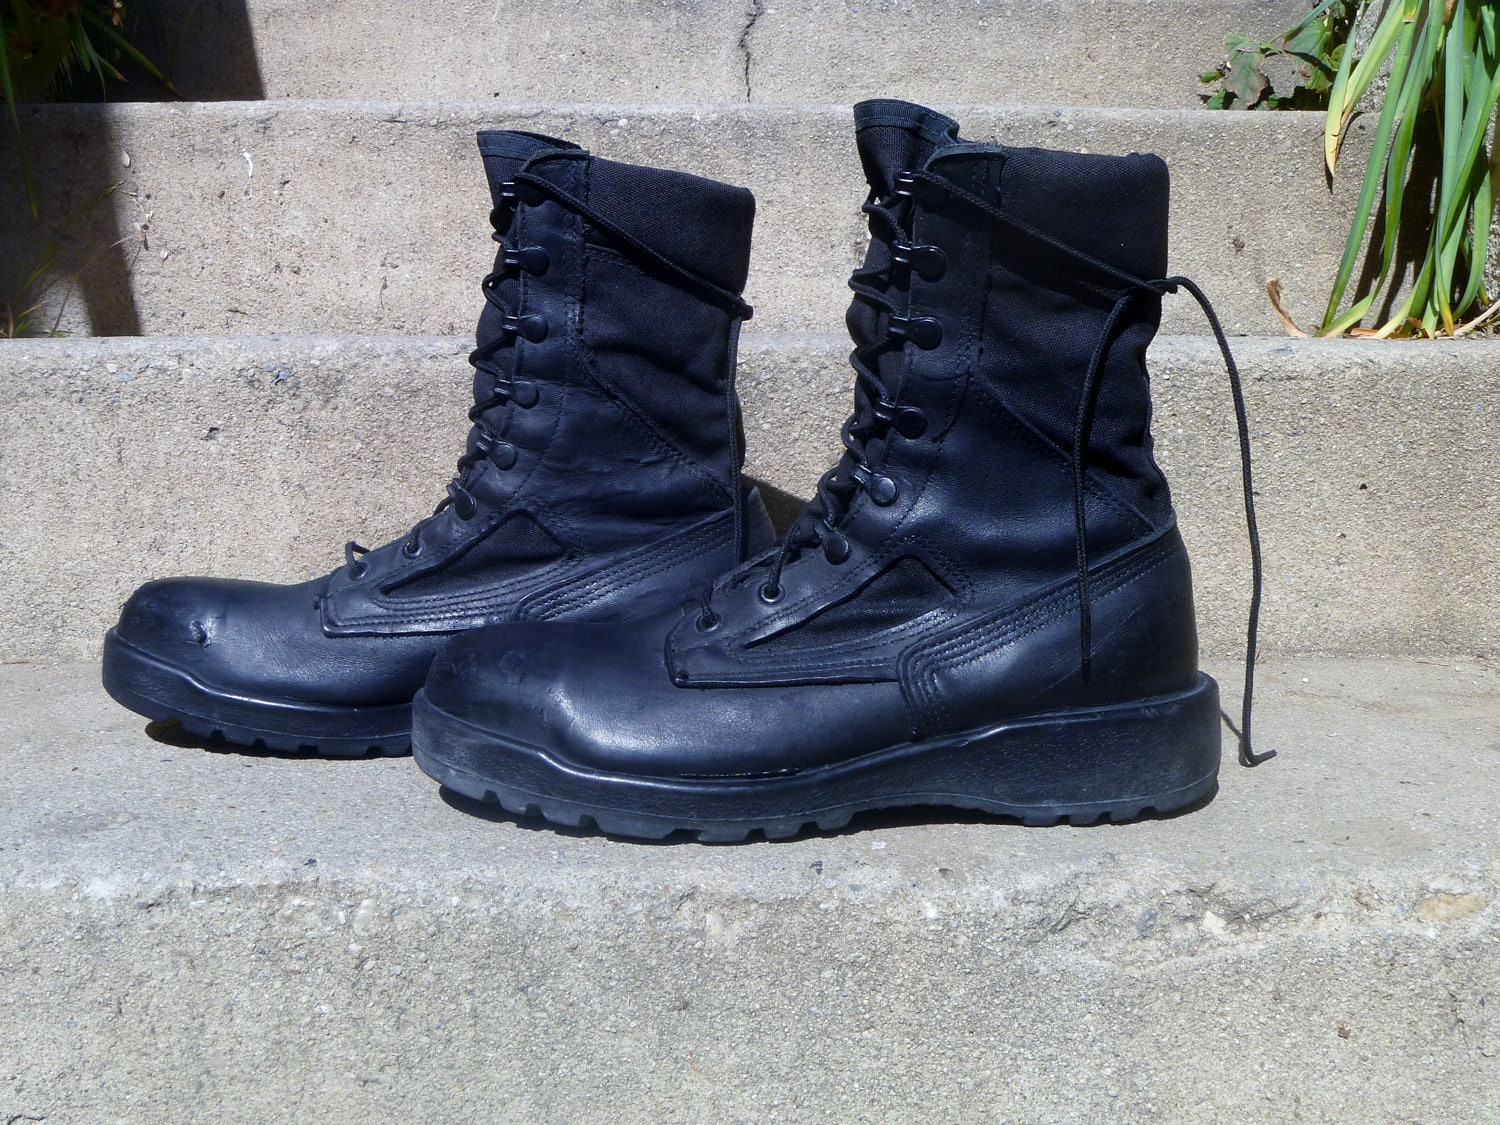 Vintage Army Combat Boots Black Lace Up Trooper By Belleville